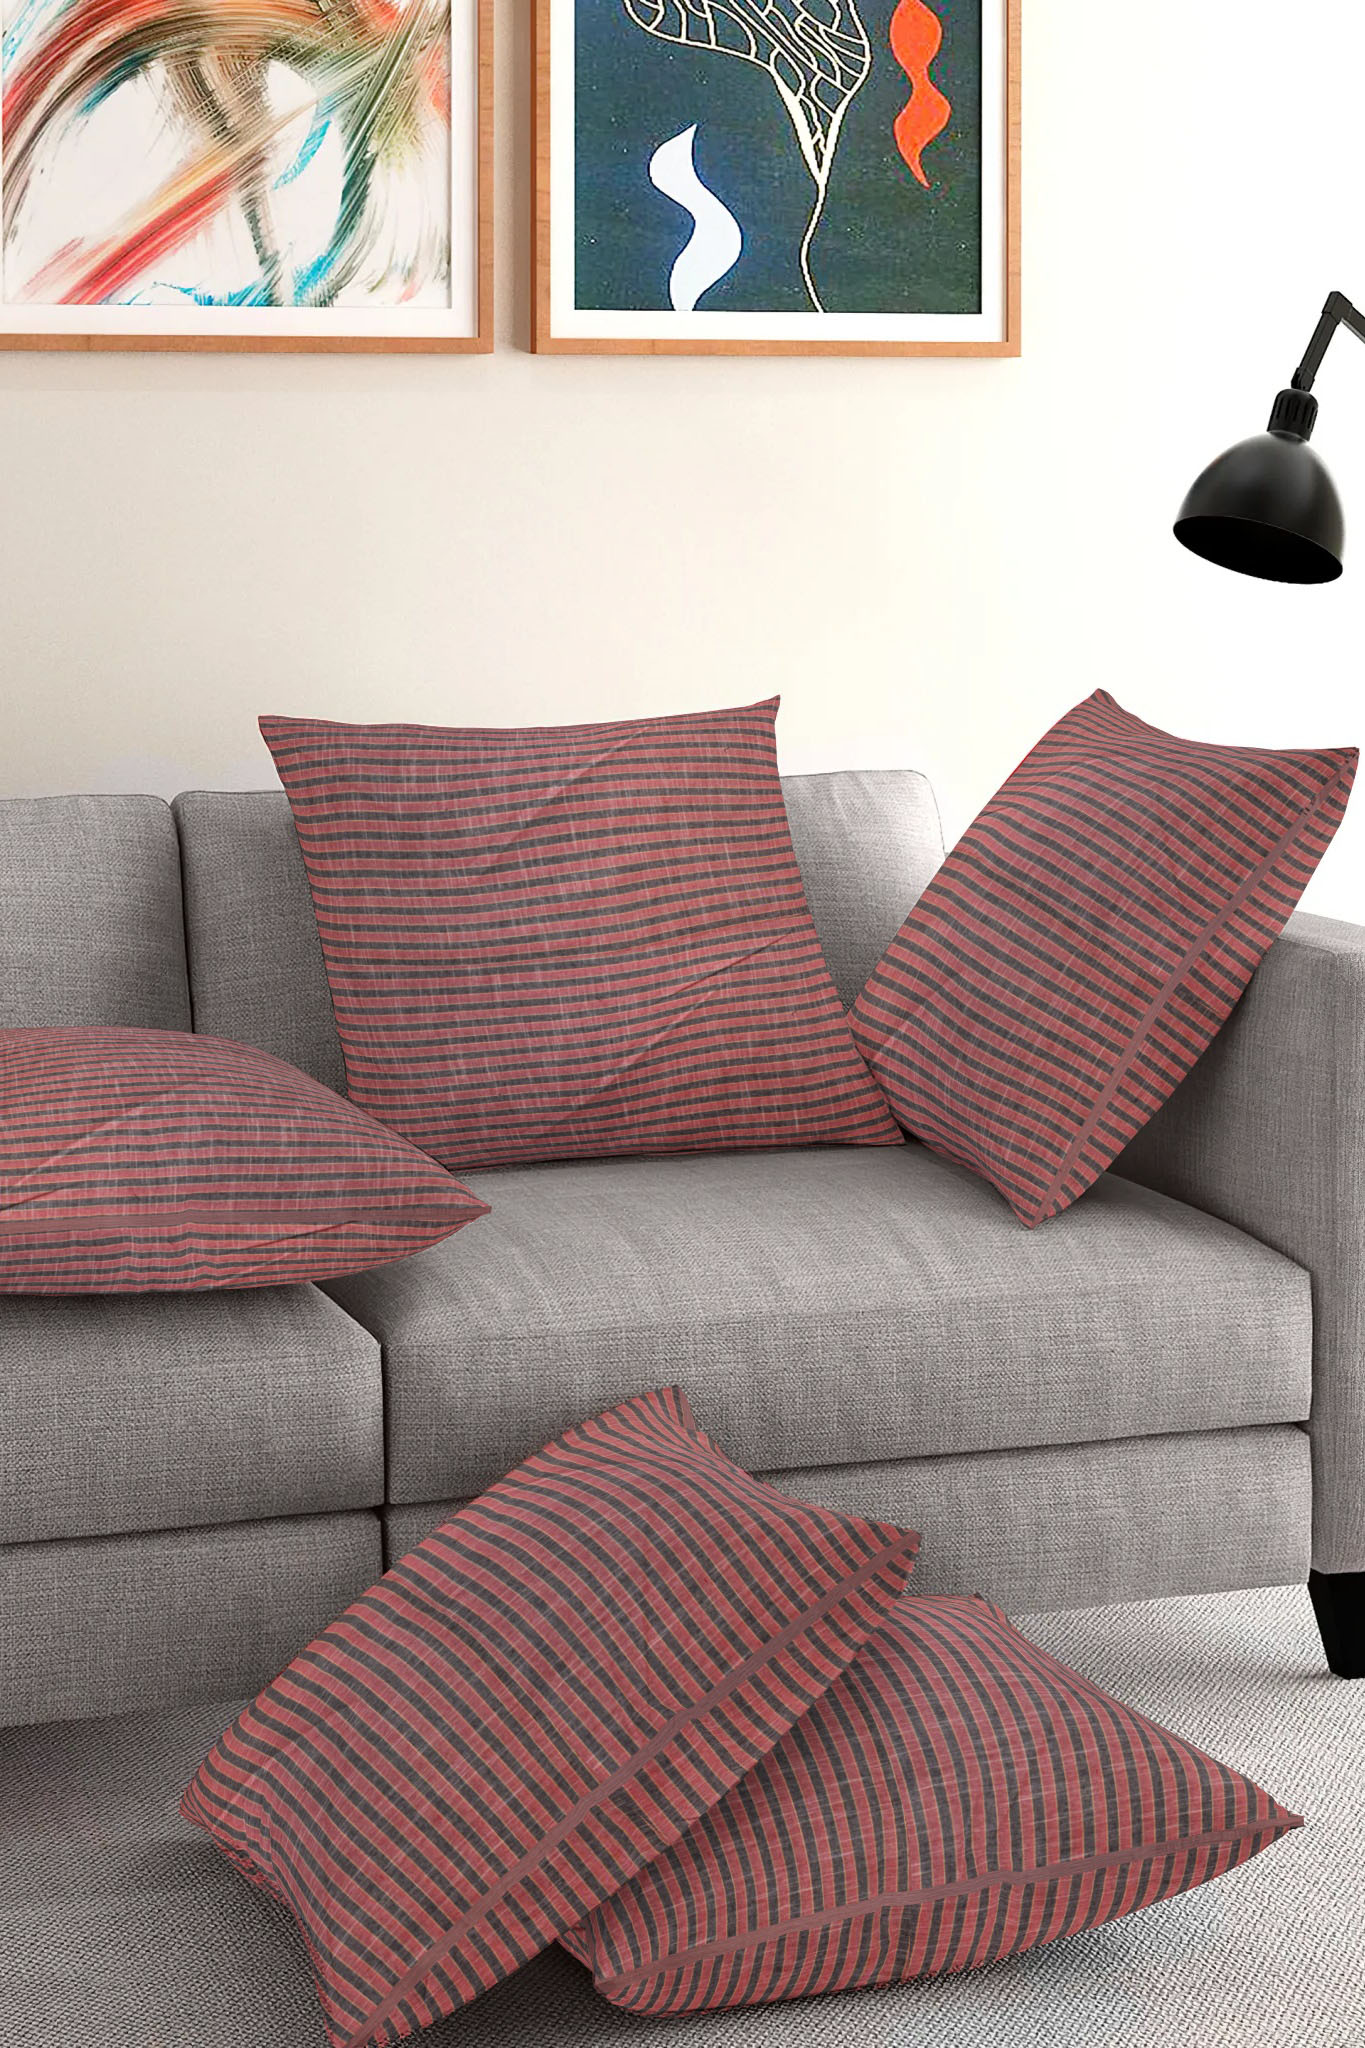 Set of 5-Pink Gray Cotton Cushion Cover-35395-16x16 Inches